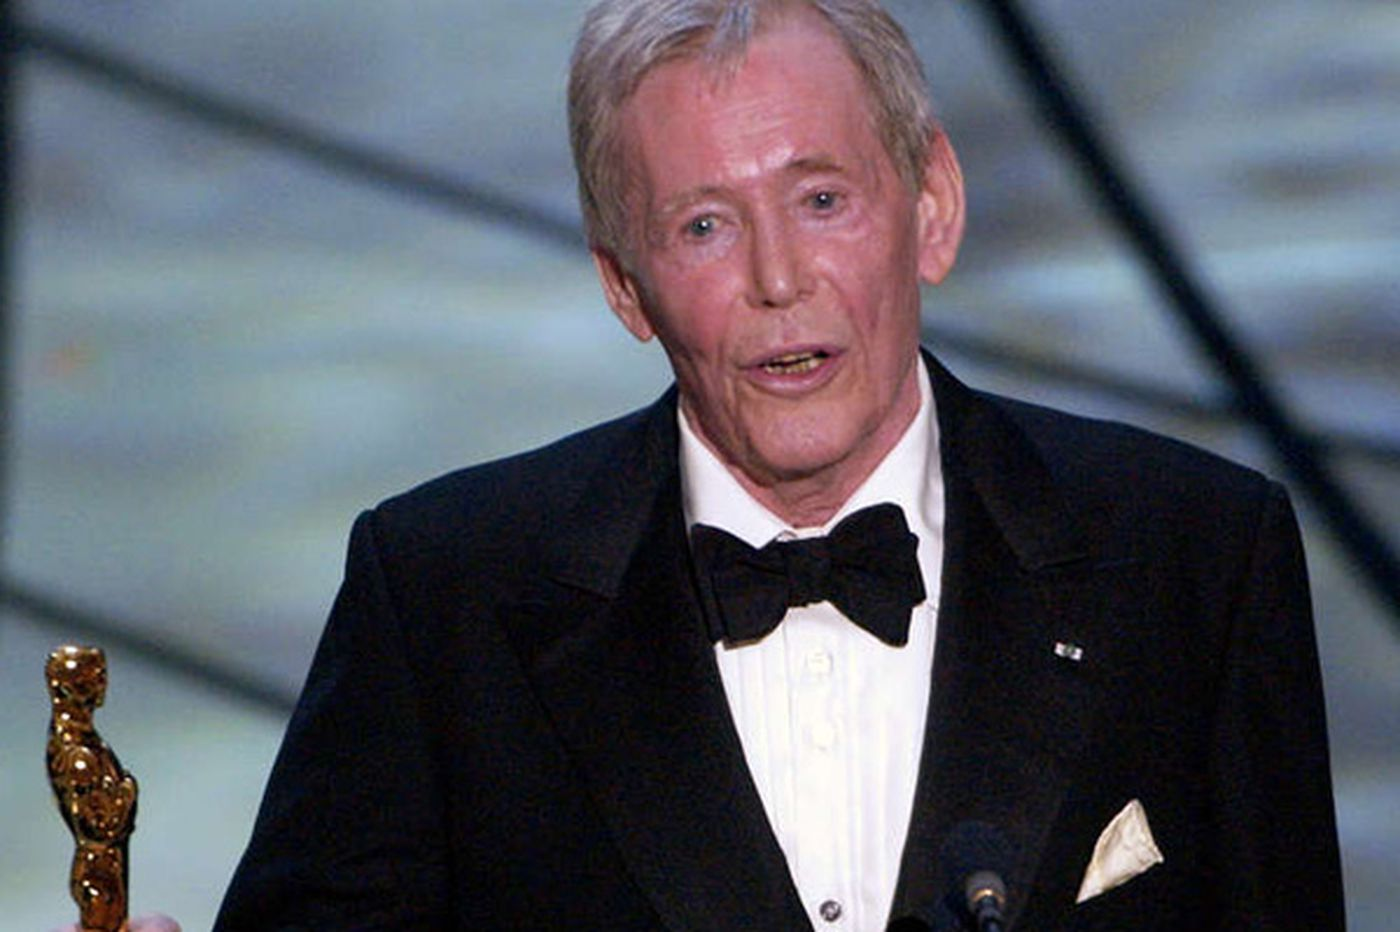 Actor Peter O'Toole, 81